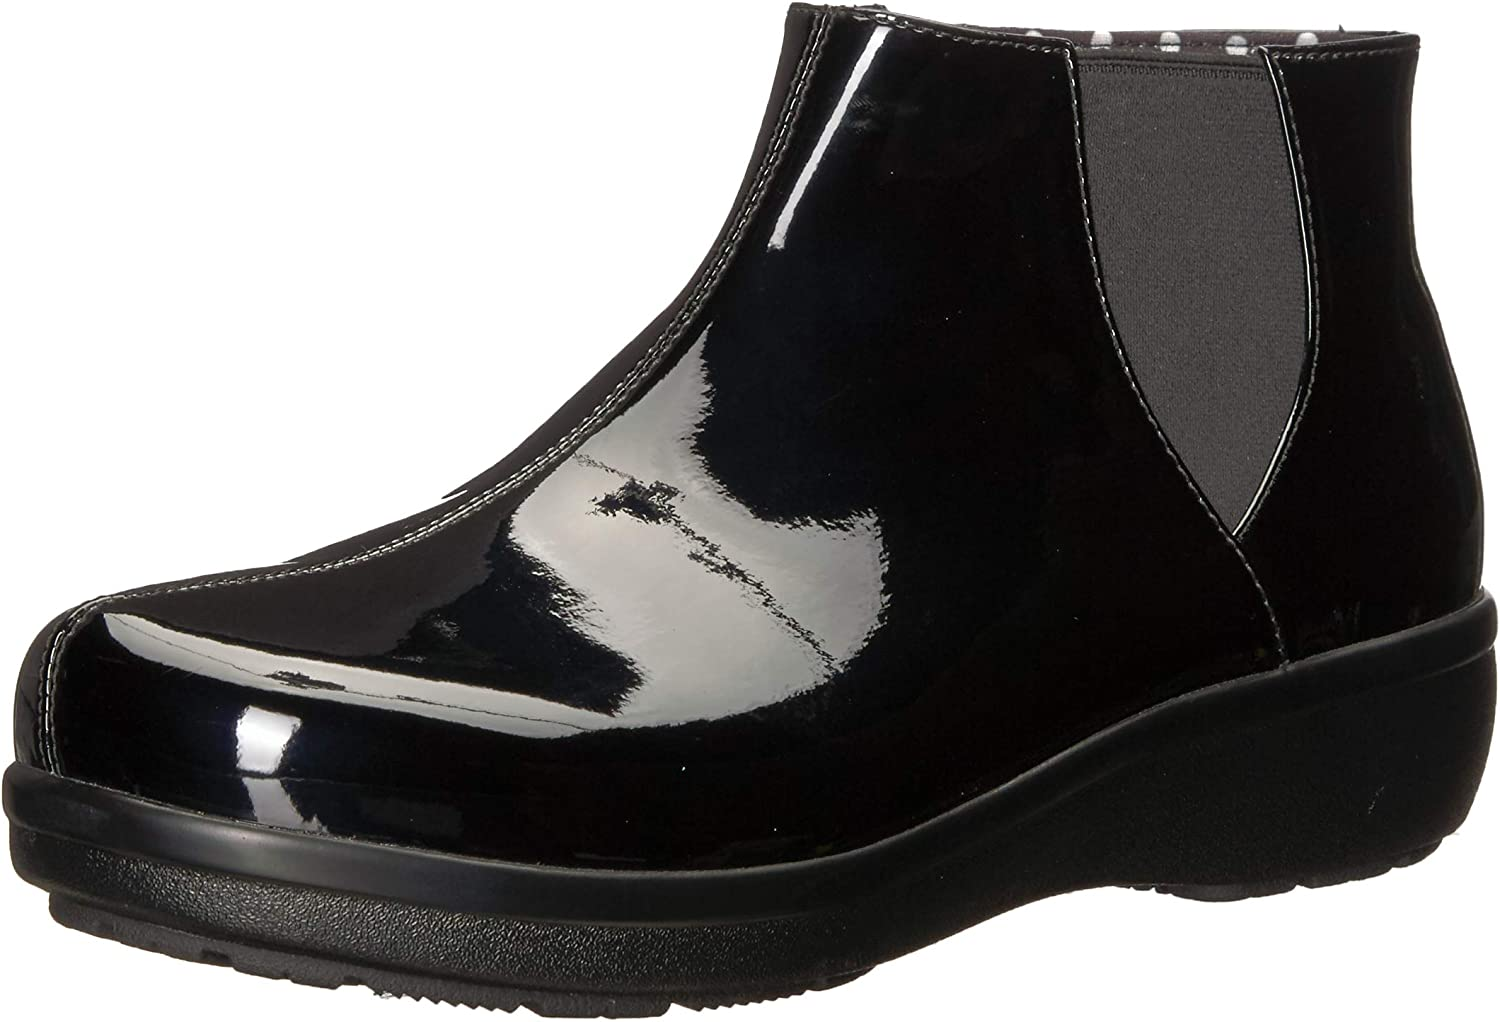 Alegria Climatease Womens Boot Black 10 M Spring new work US Ranking TOP5 Patent